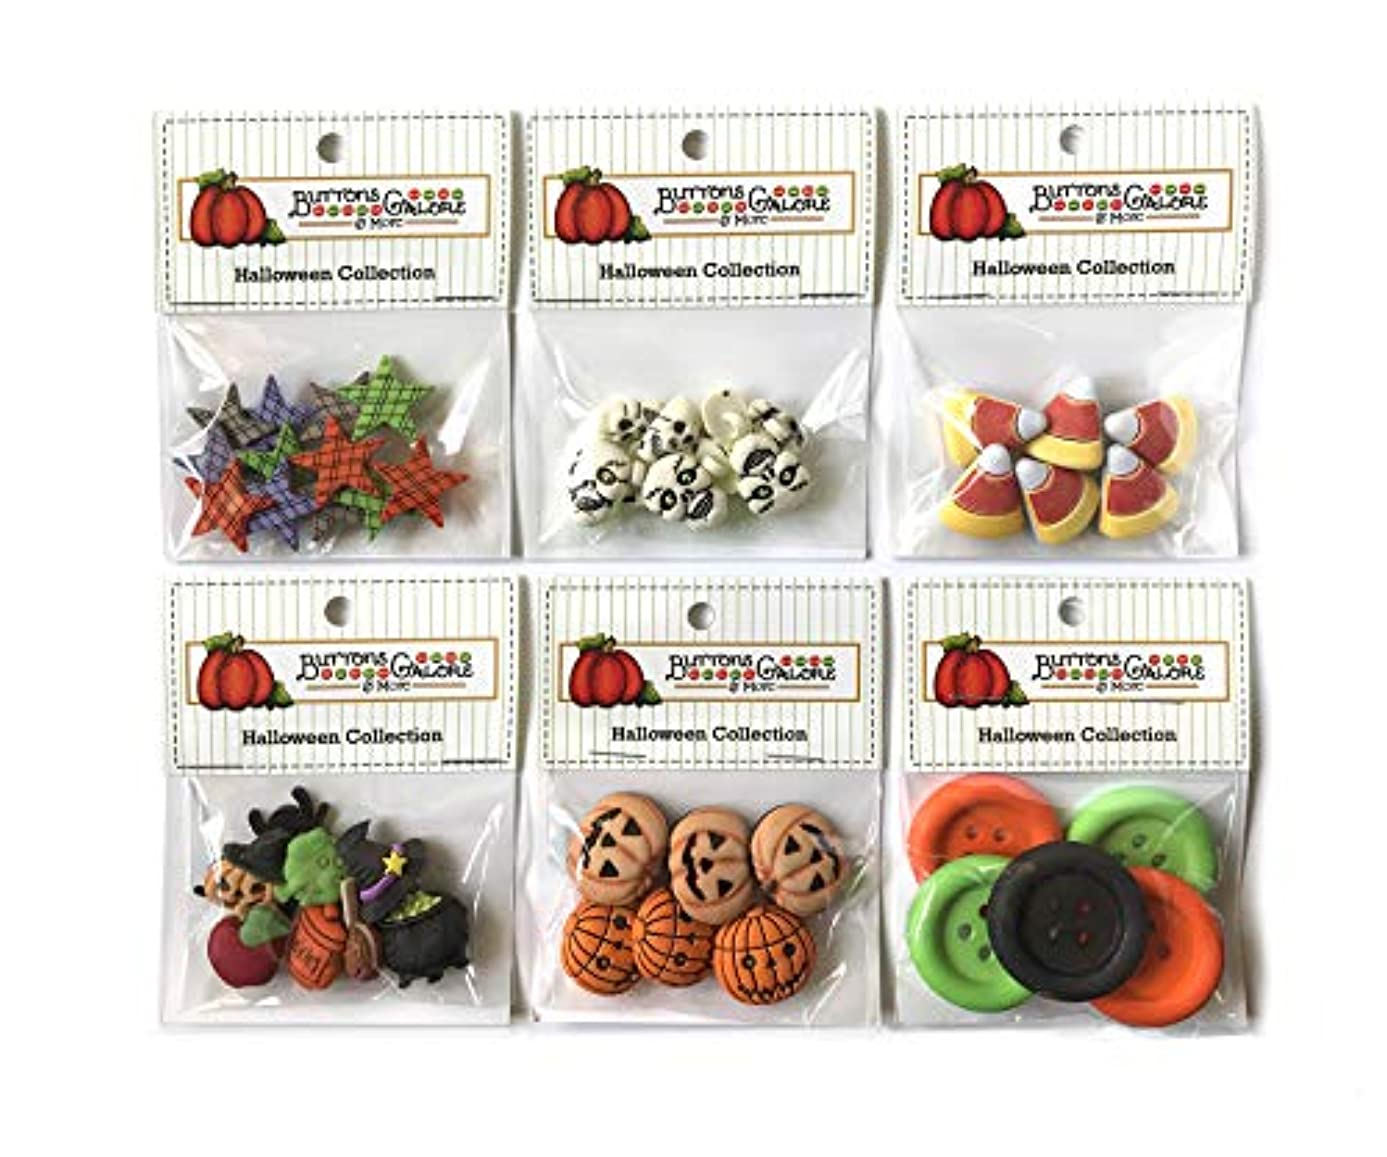 Buttons Galore 40+ Assorted Halloween Buttons for Sewing & Crafts - Set of 6 Button Packs - Candy Corn, Jack O Lanterns & More